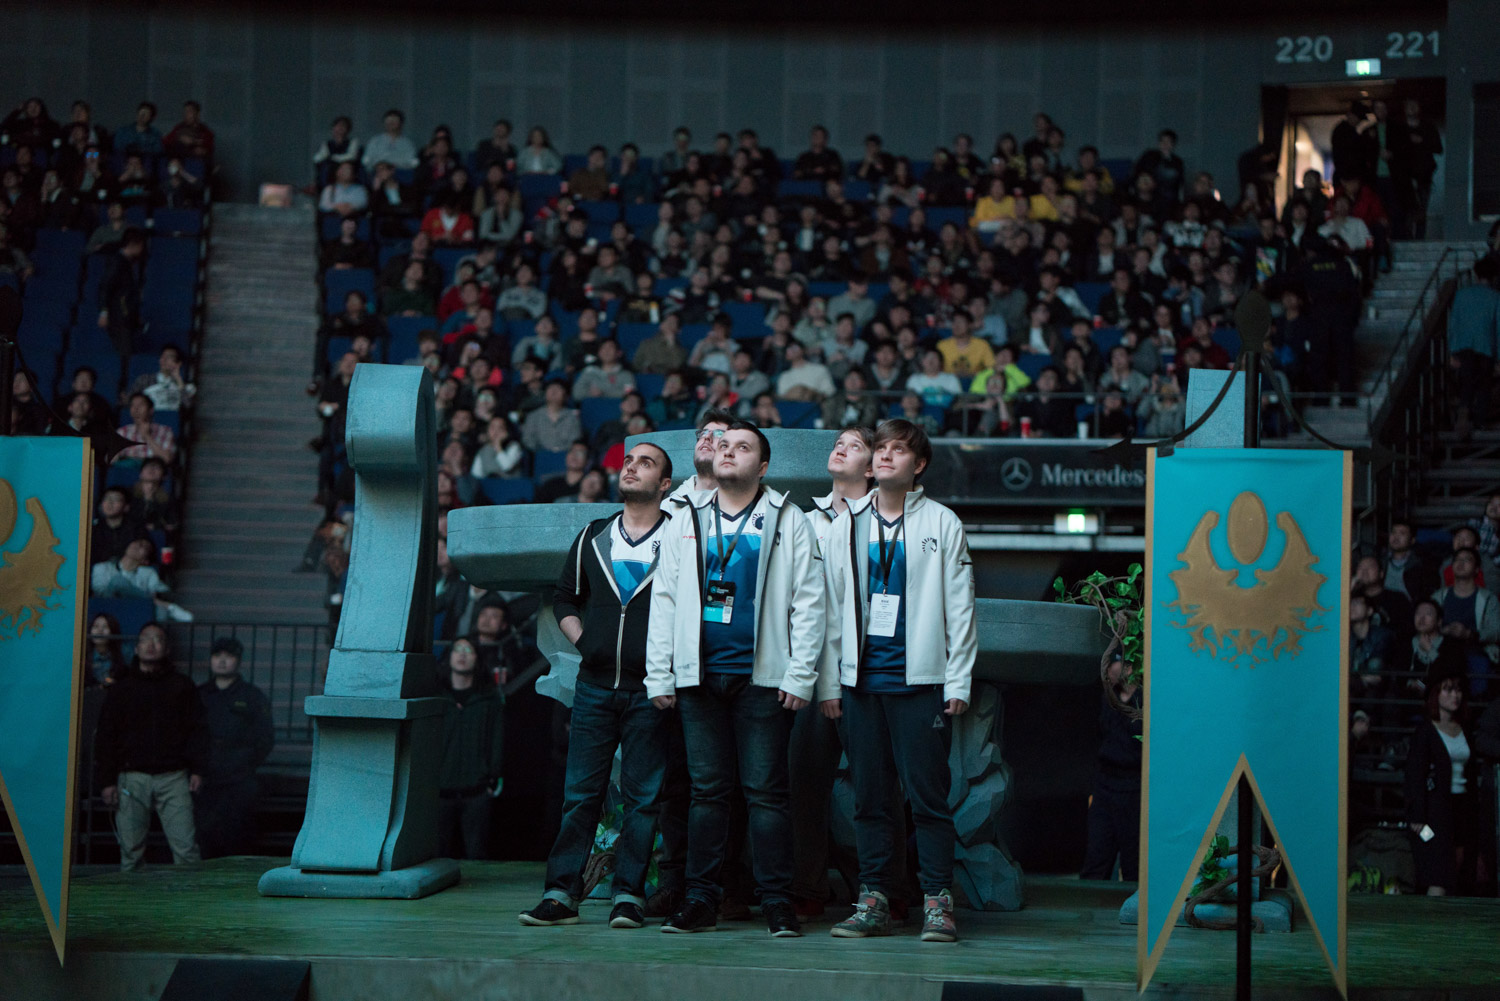 Team Liquid before entering the stage to play the finals